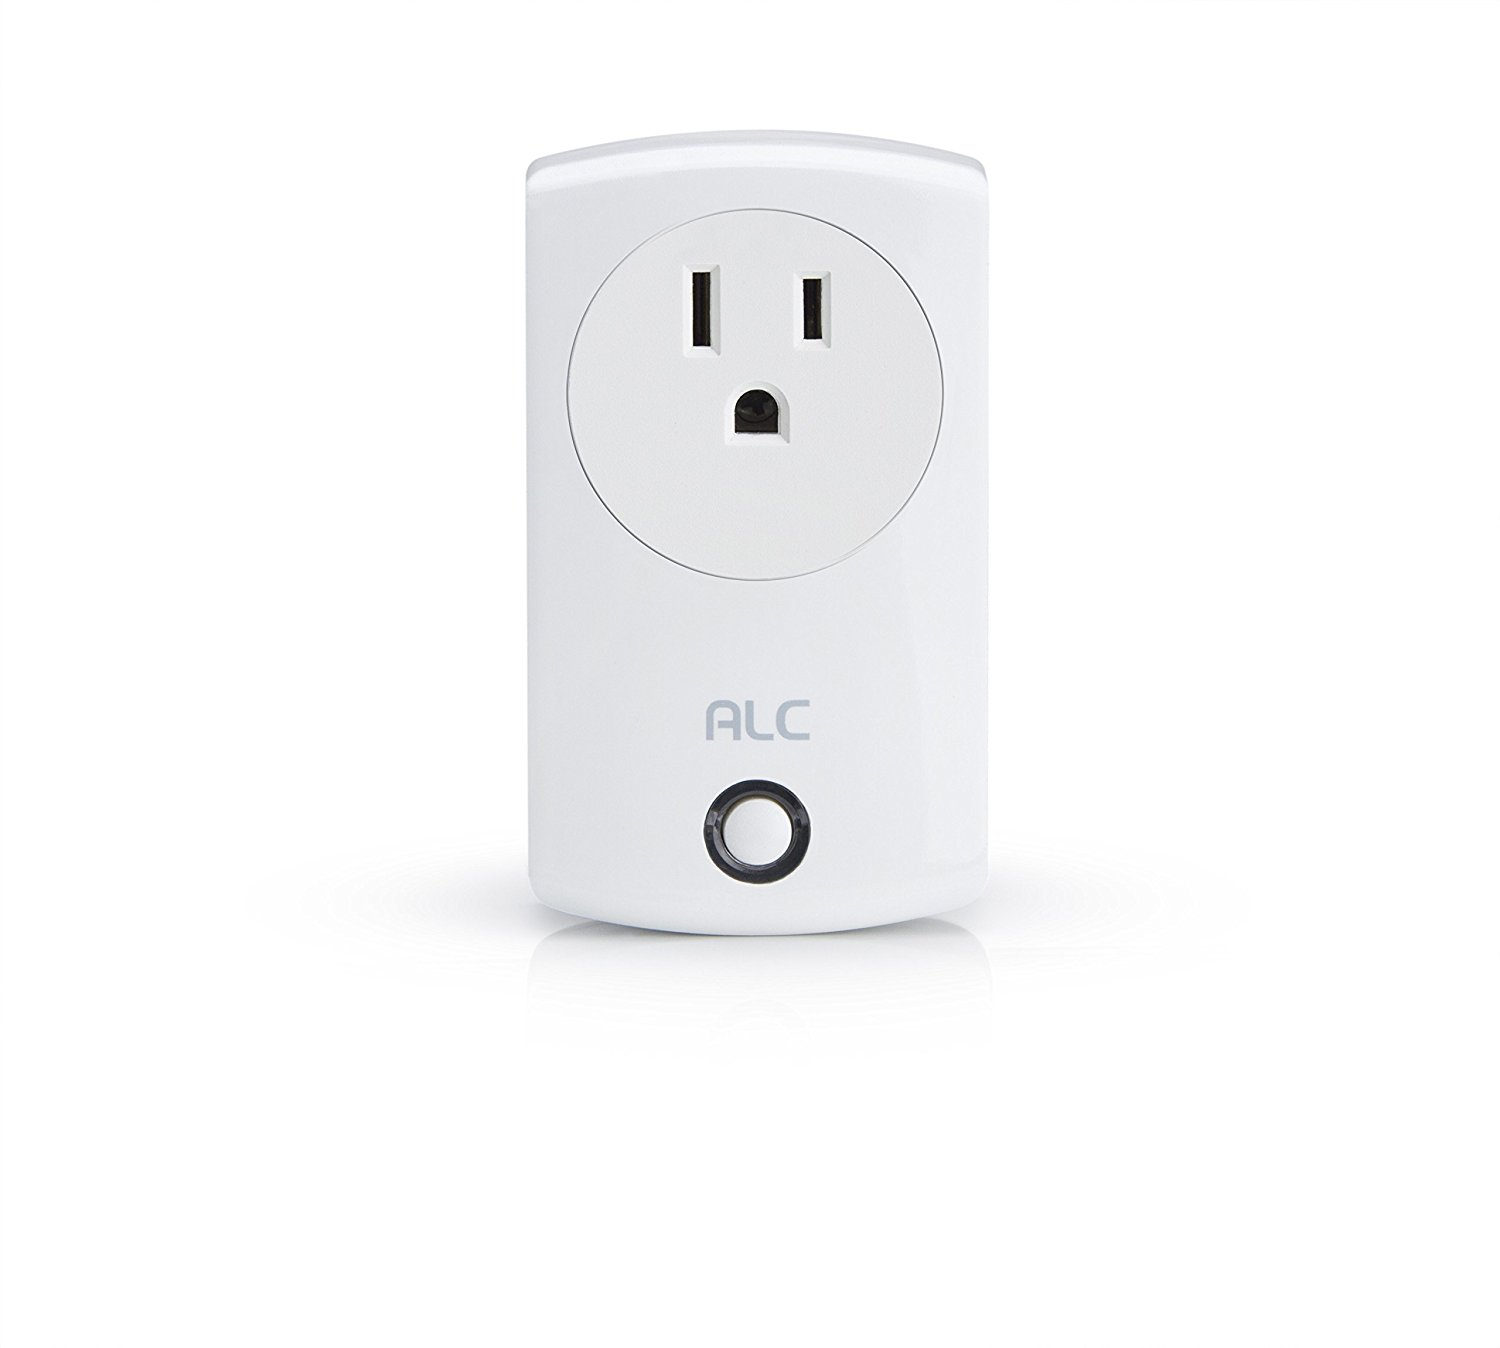 AHSS41 Connect Power Switch Accessory (White), ALC Power Switch By ALC by ALC